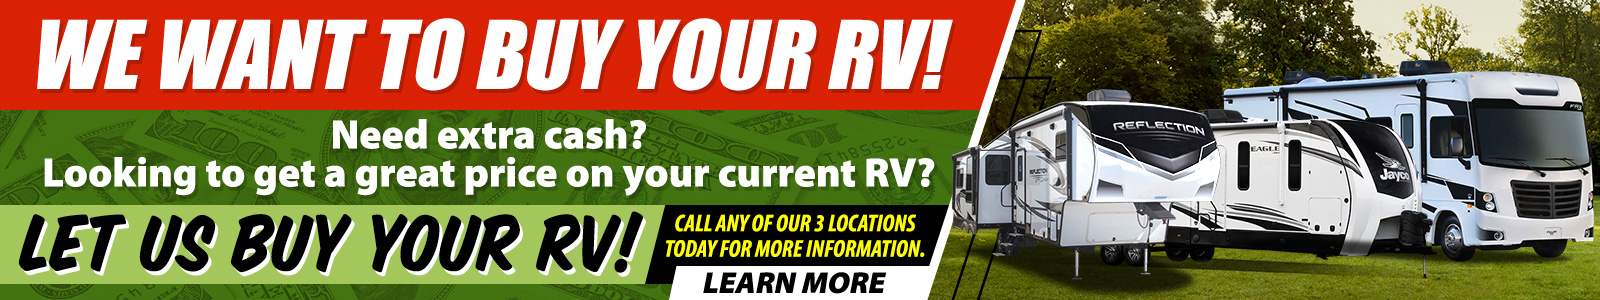 We Want To Buy Your RV